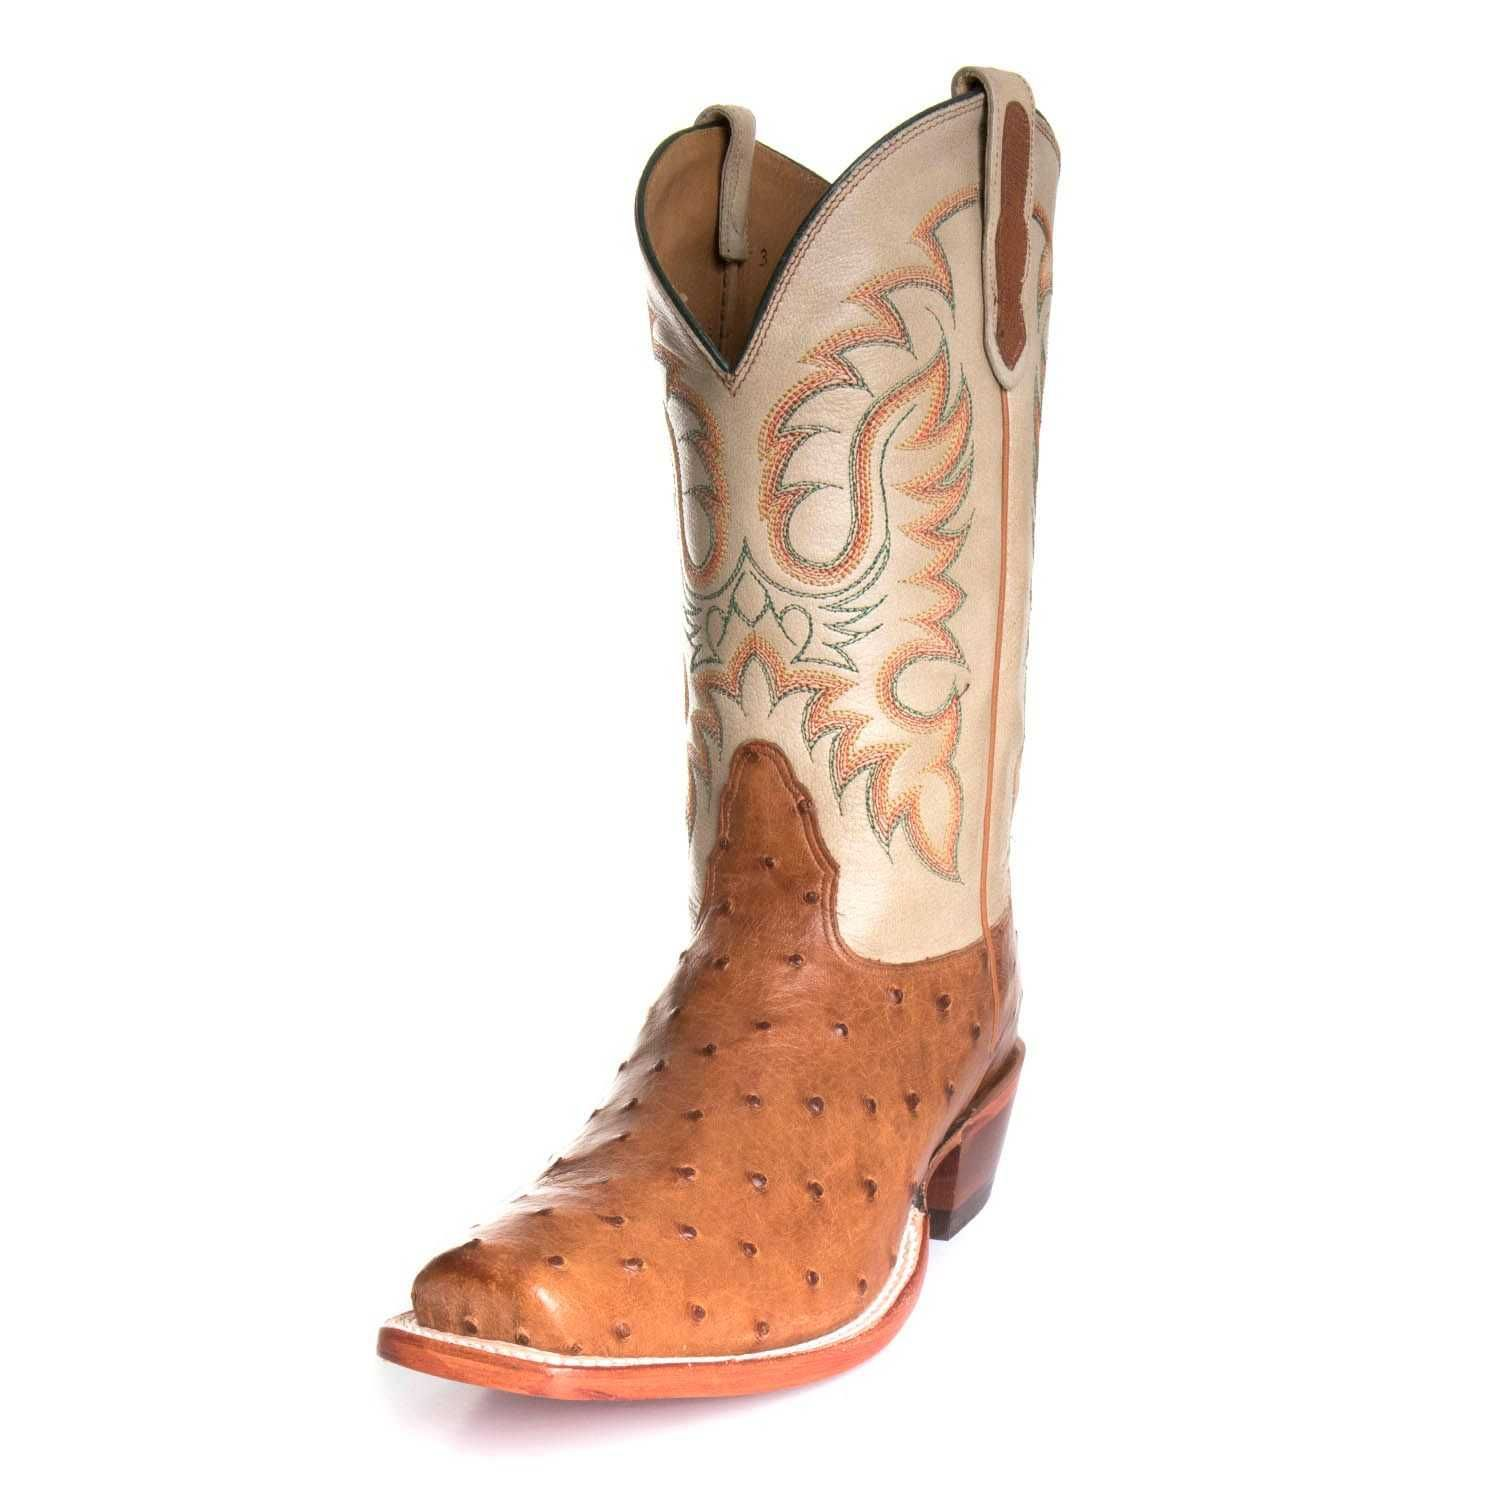 1e21aa6fb32 Nocona Mens Full Quill Ostrich Exotic Boots MD6512 in 2019 | Cowboy ...